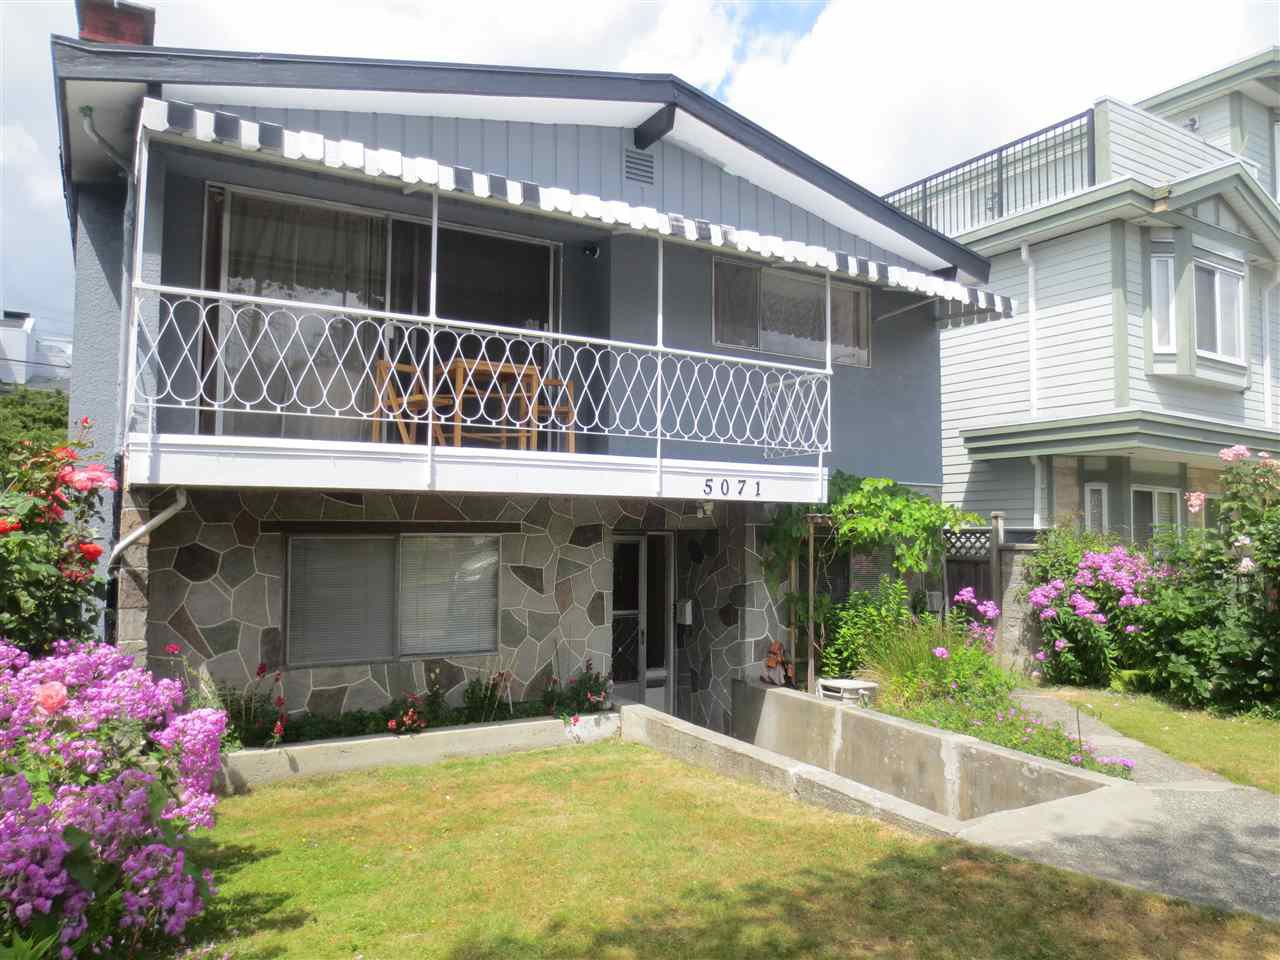 Main Photo: 5071 KILLARNEY Street in Vancouver: Collingwood VE House for sale (Vancouver East)  : MLS®# R2191461